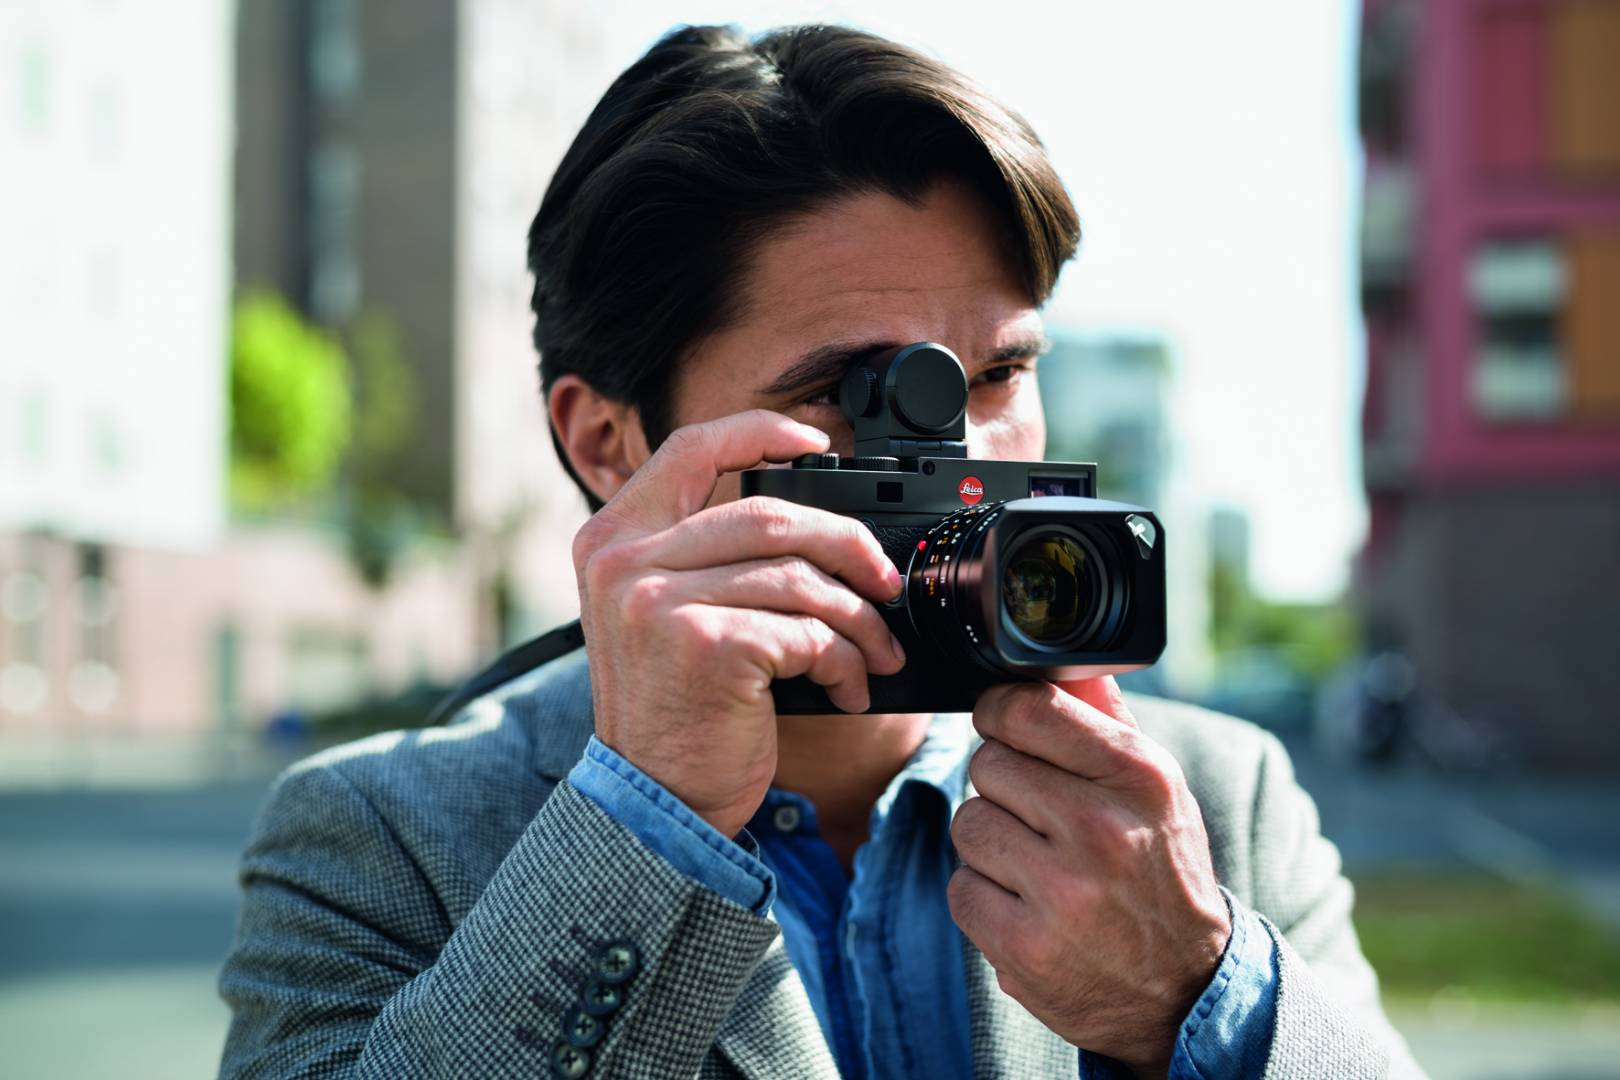 The Visoflex accessory for the M10 series was introduced six years ago with the Leica X and T models. It is now too old to carry through to the M11 (Image Leica Camera AG)